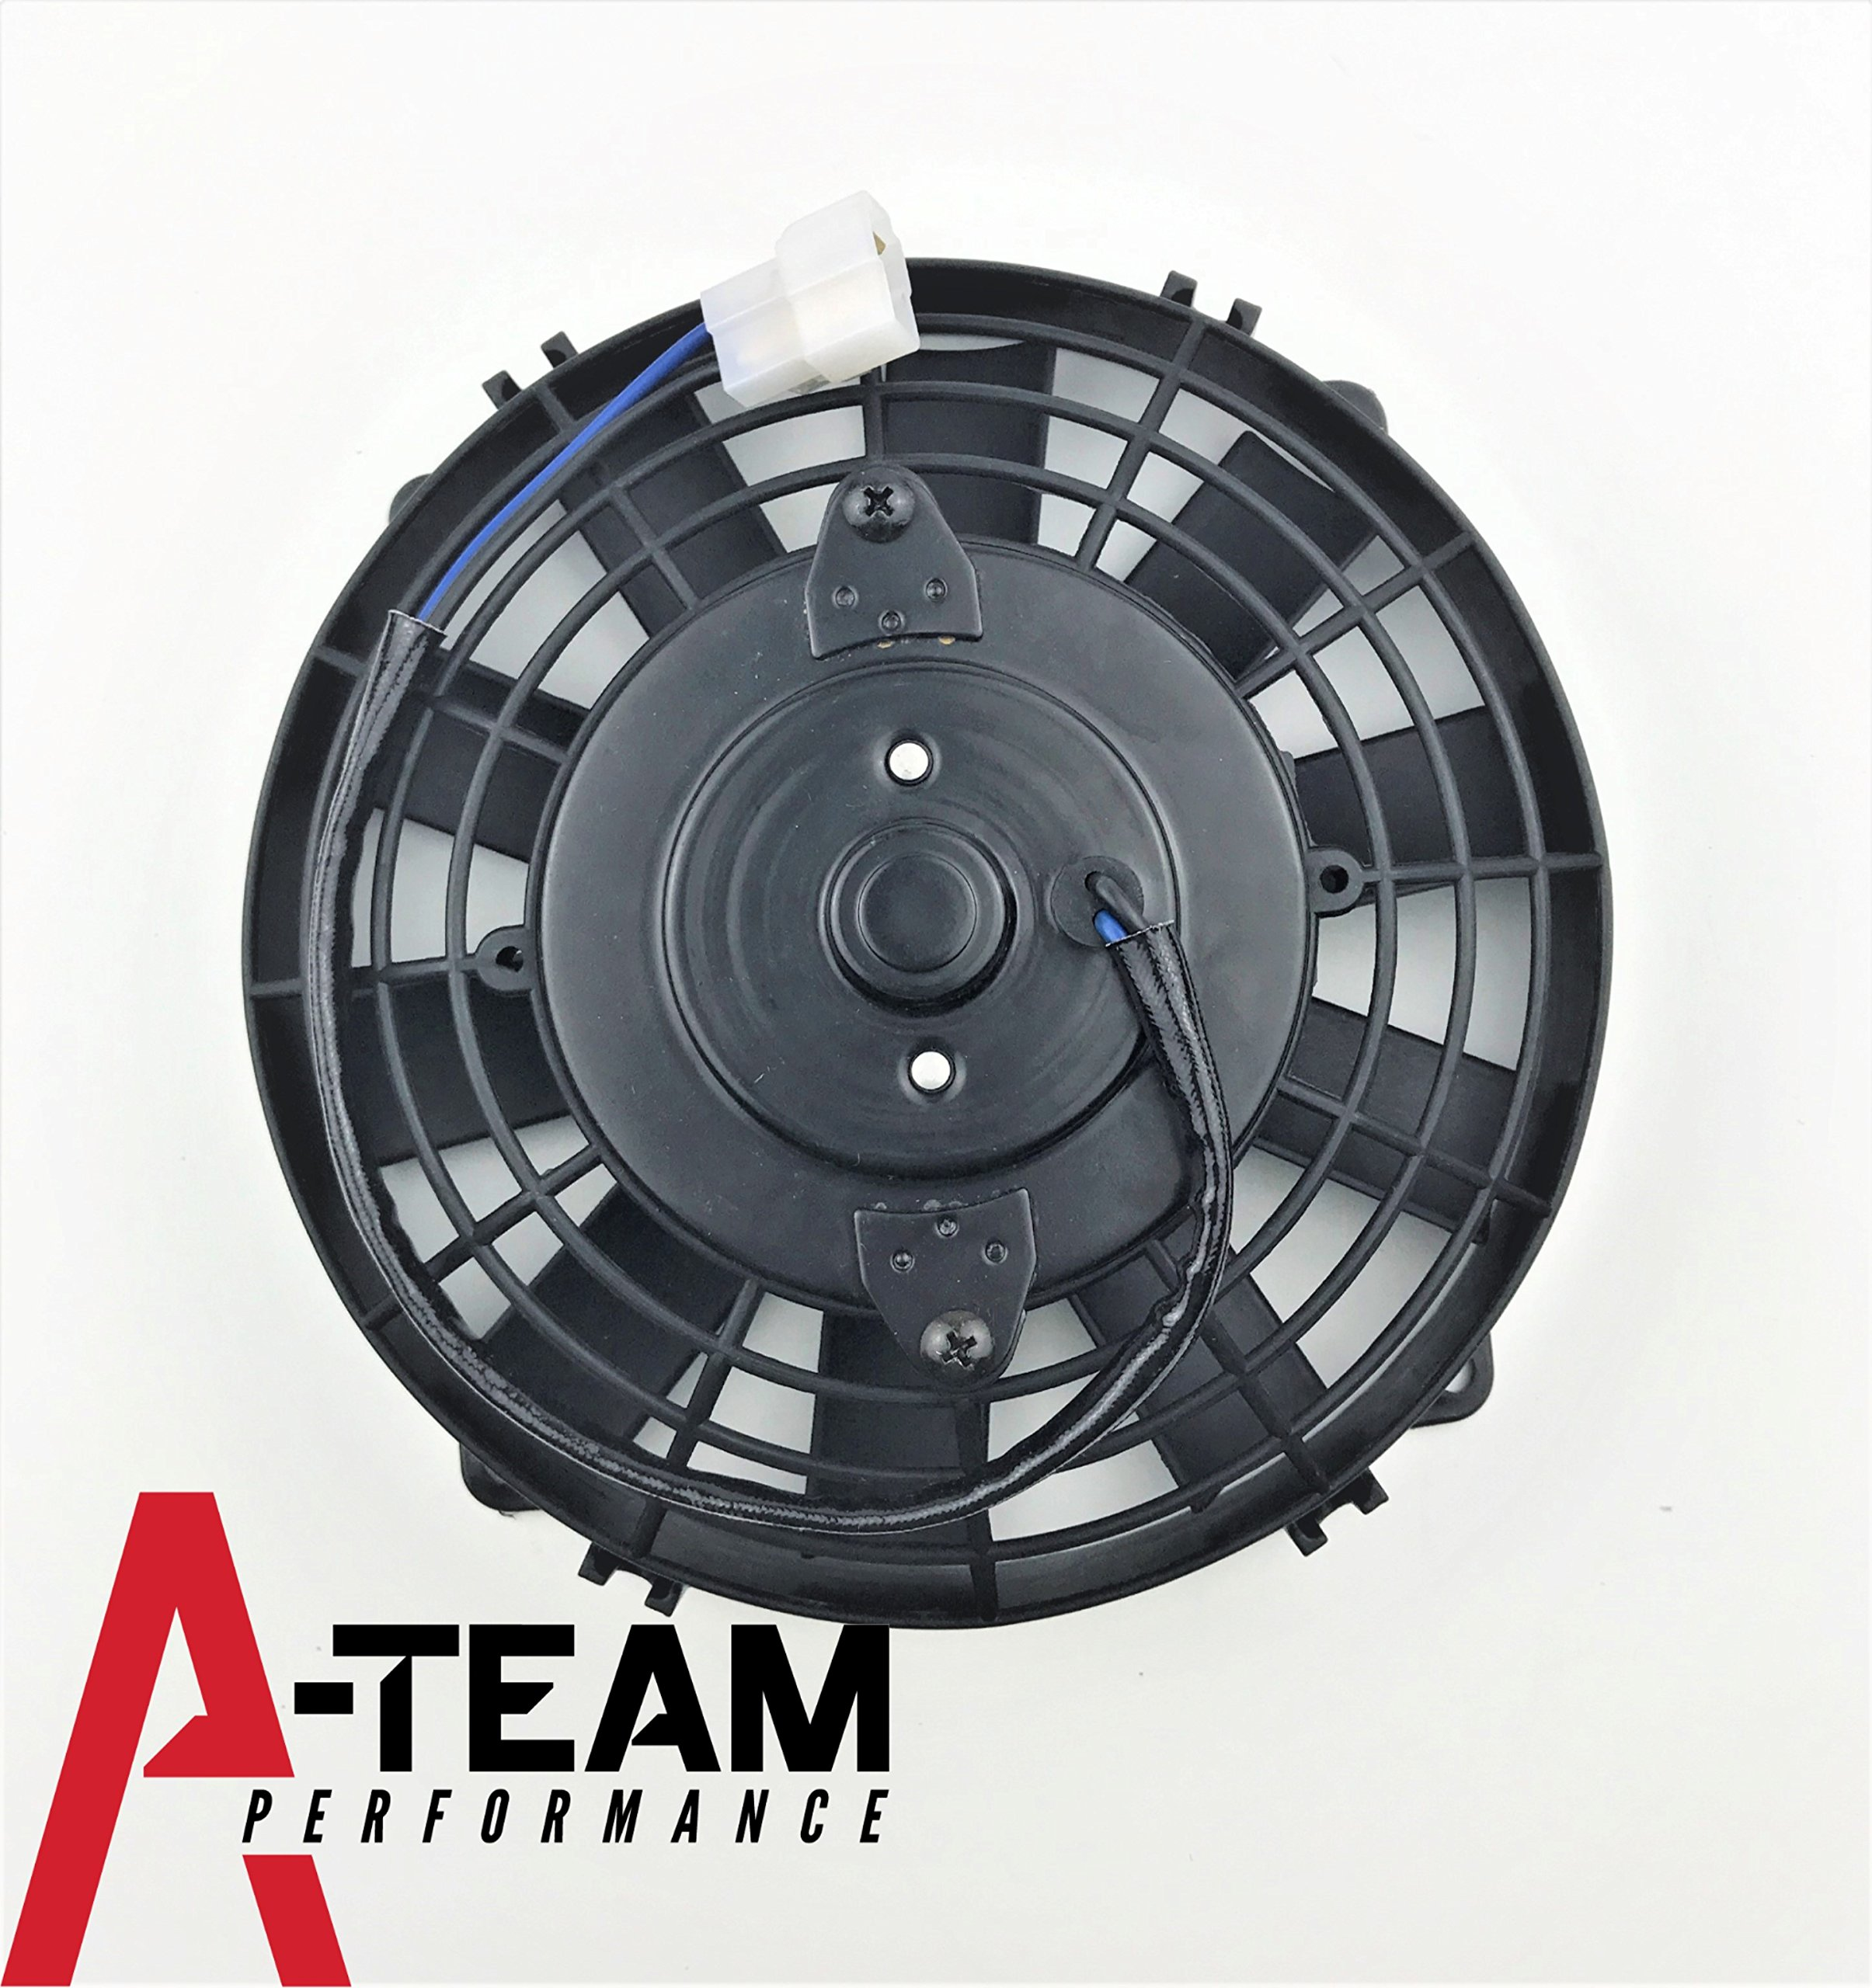 A-Team Performance 120021 8'' HIGH PERFORMANCE 1700 CFM 12V ELECTRIC RADIATOR COOLING FAN - REVERSABLE FLAT BLADE 10 BLADE by Southwest Performance Parts